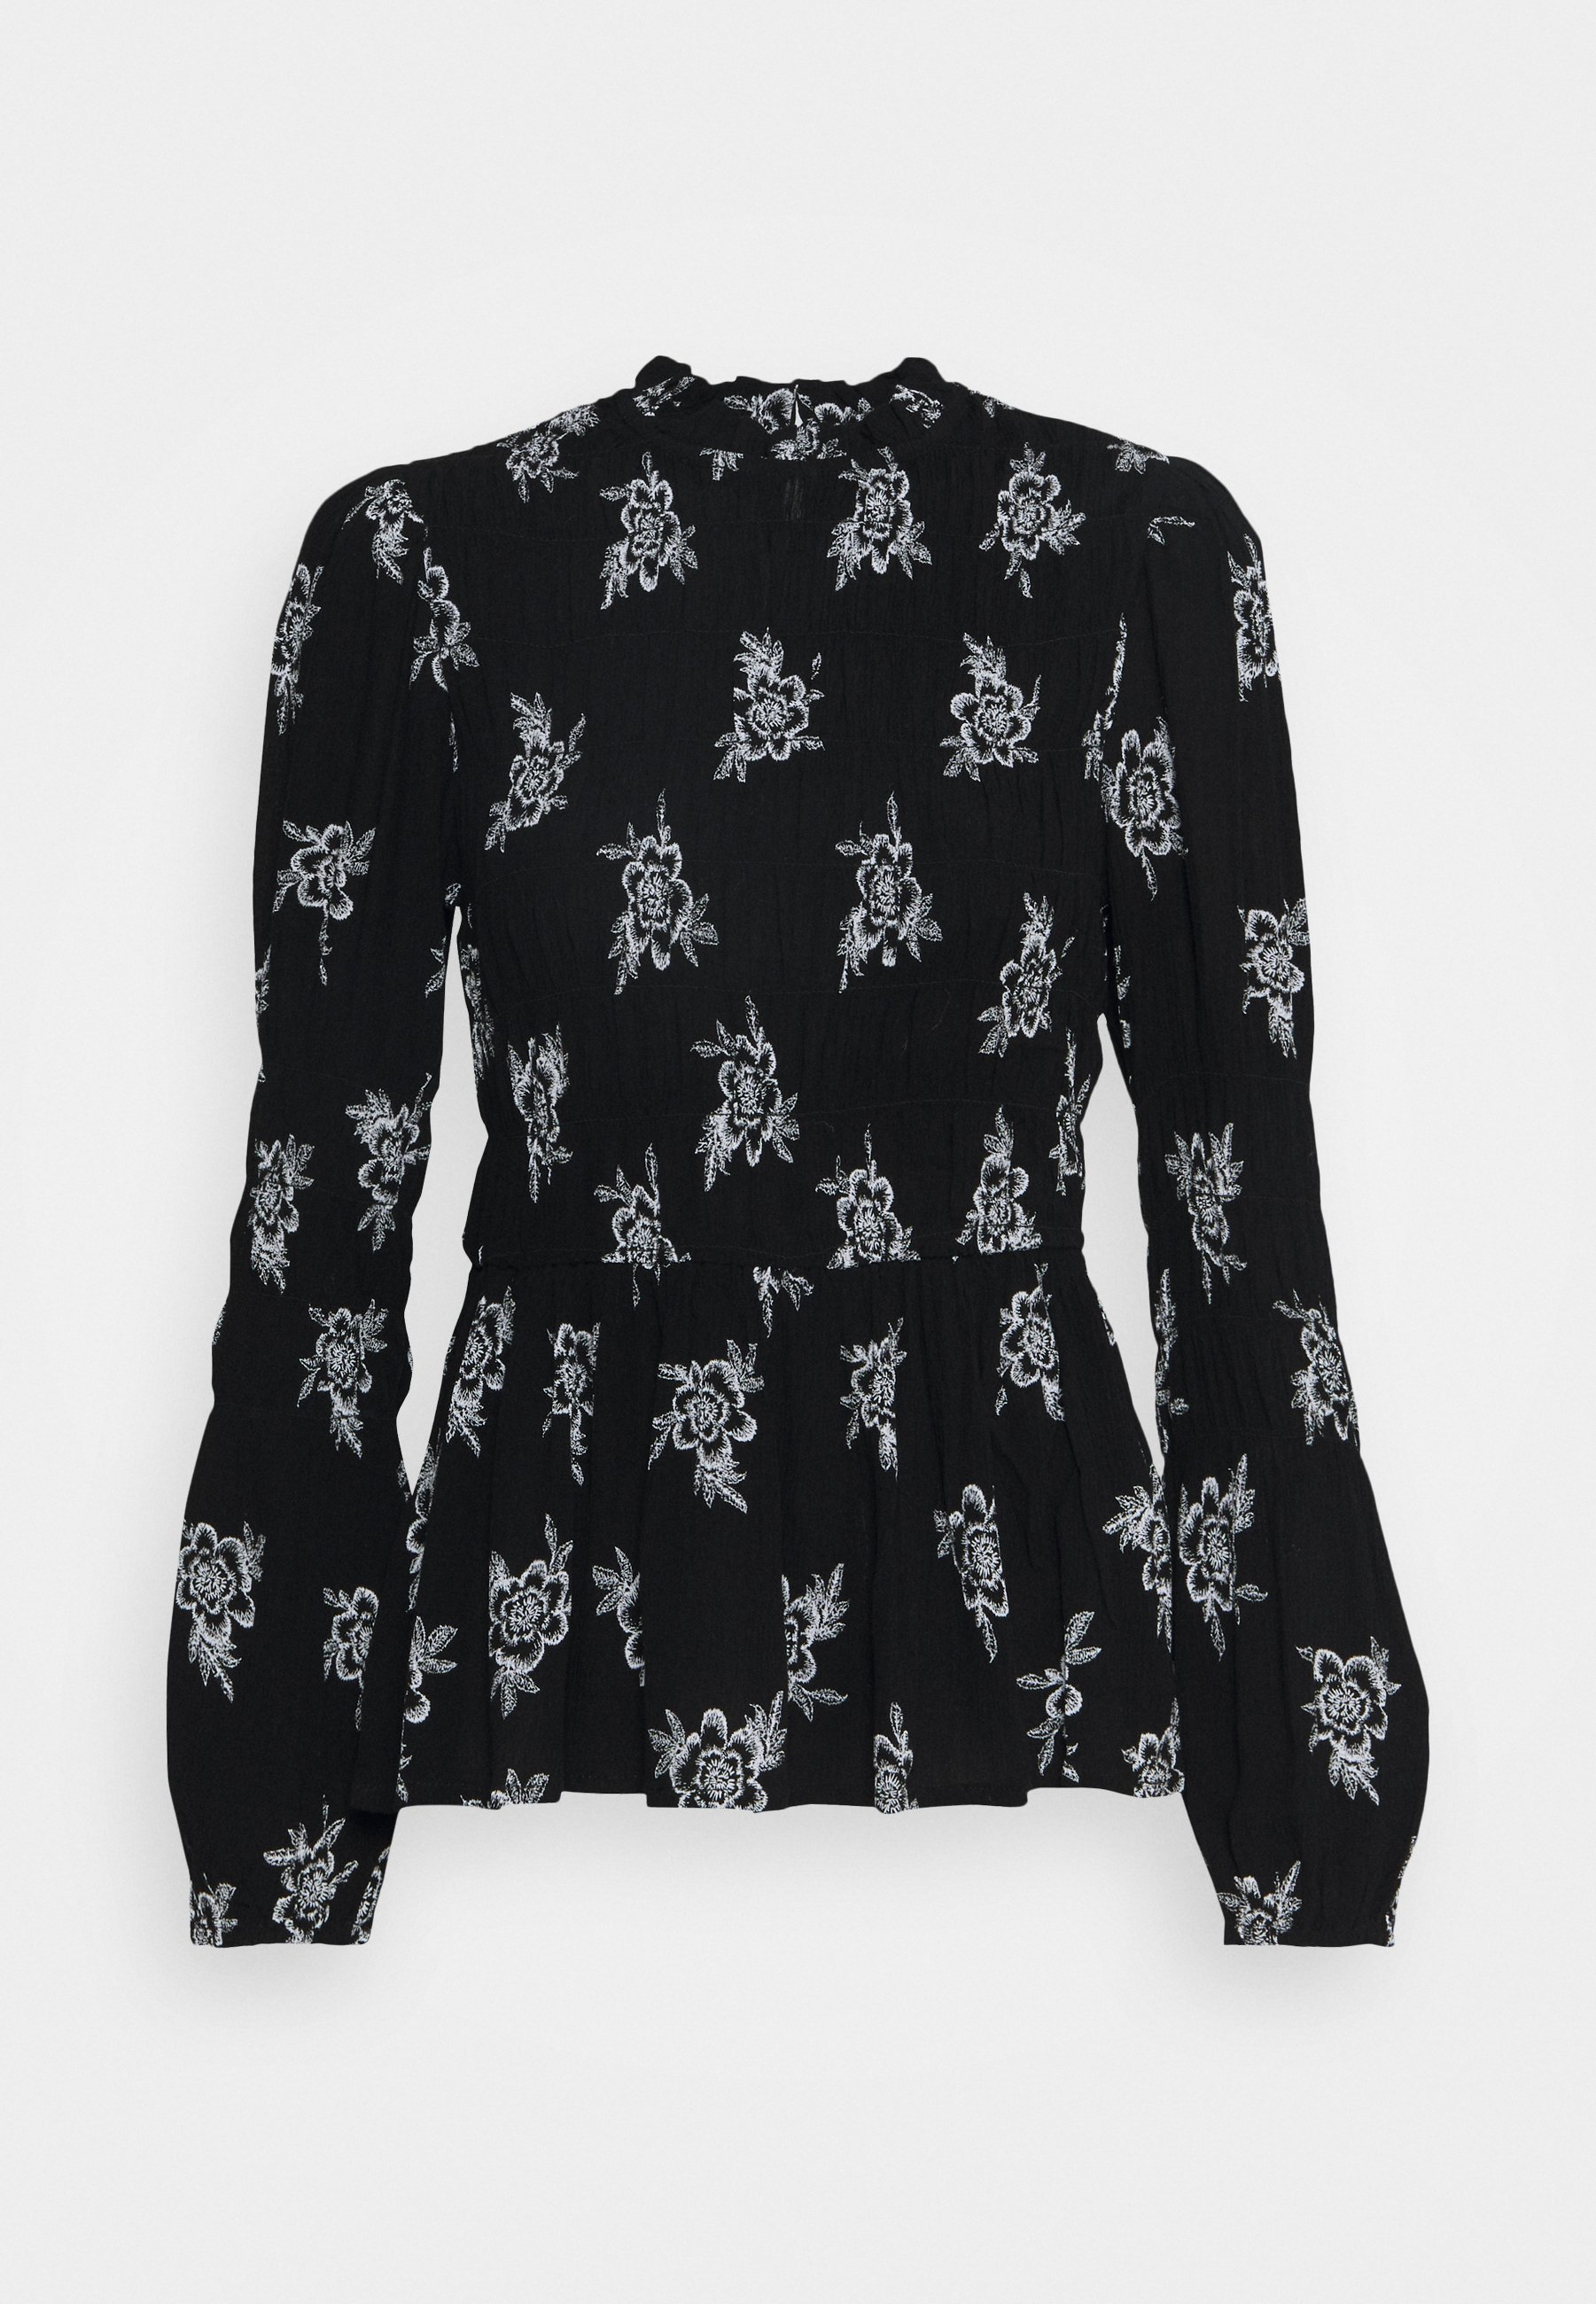 Women SHIRRED BODY LONG SLEEVE BLACK FLORAL TOP - Blouse